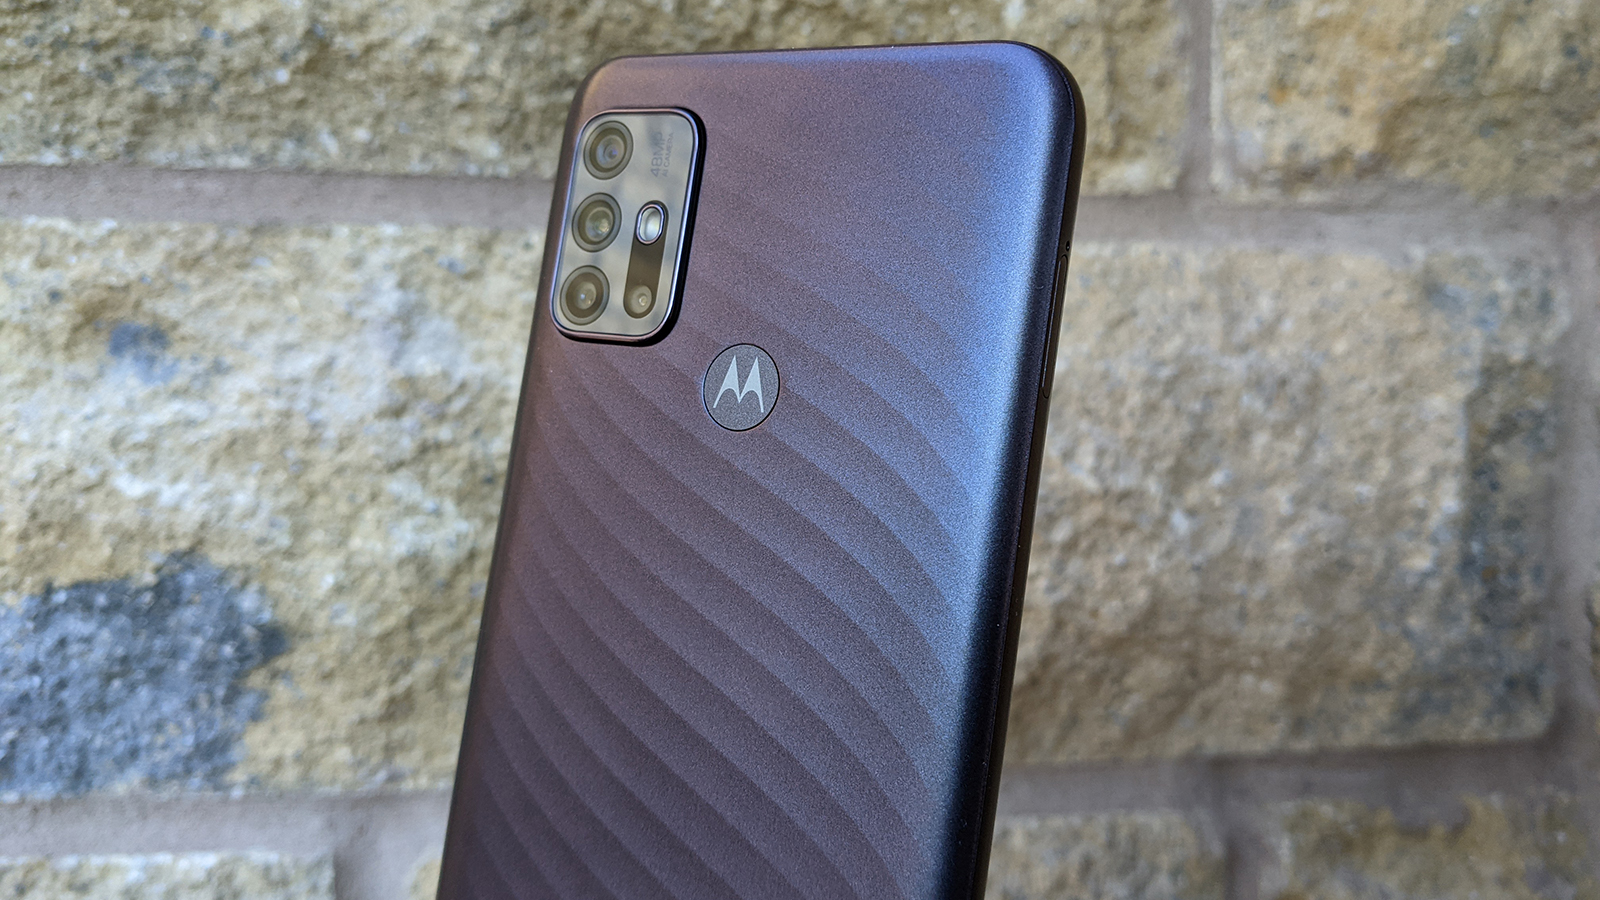 Moto G10 Power goes on sale today: price, specs, and availability